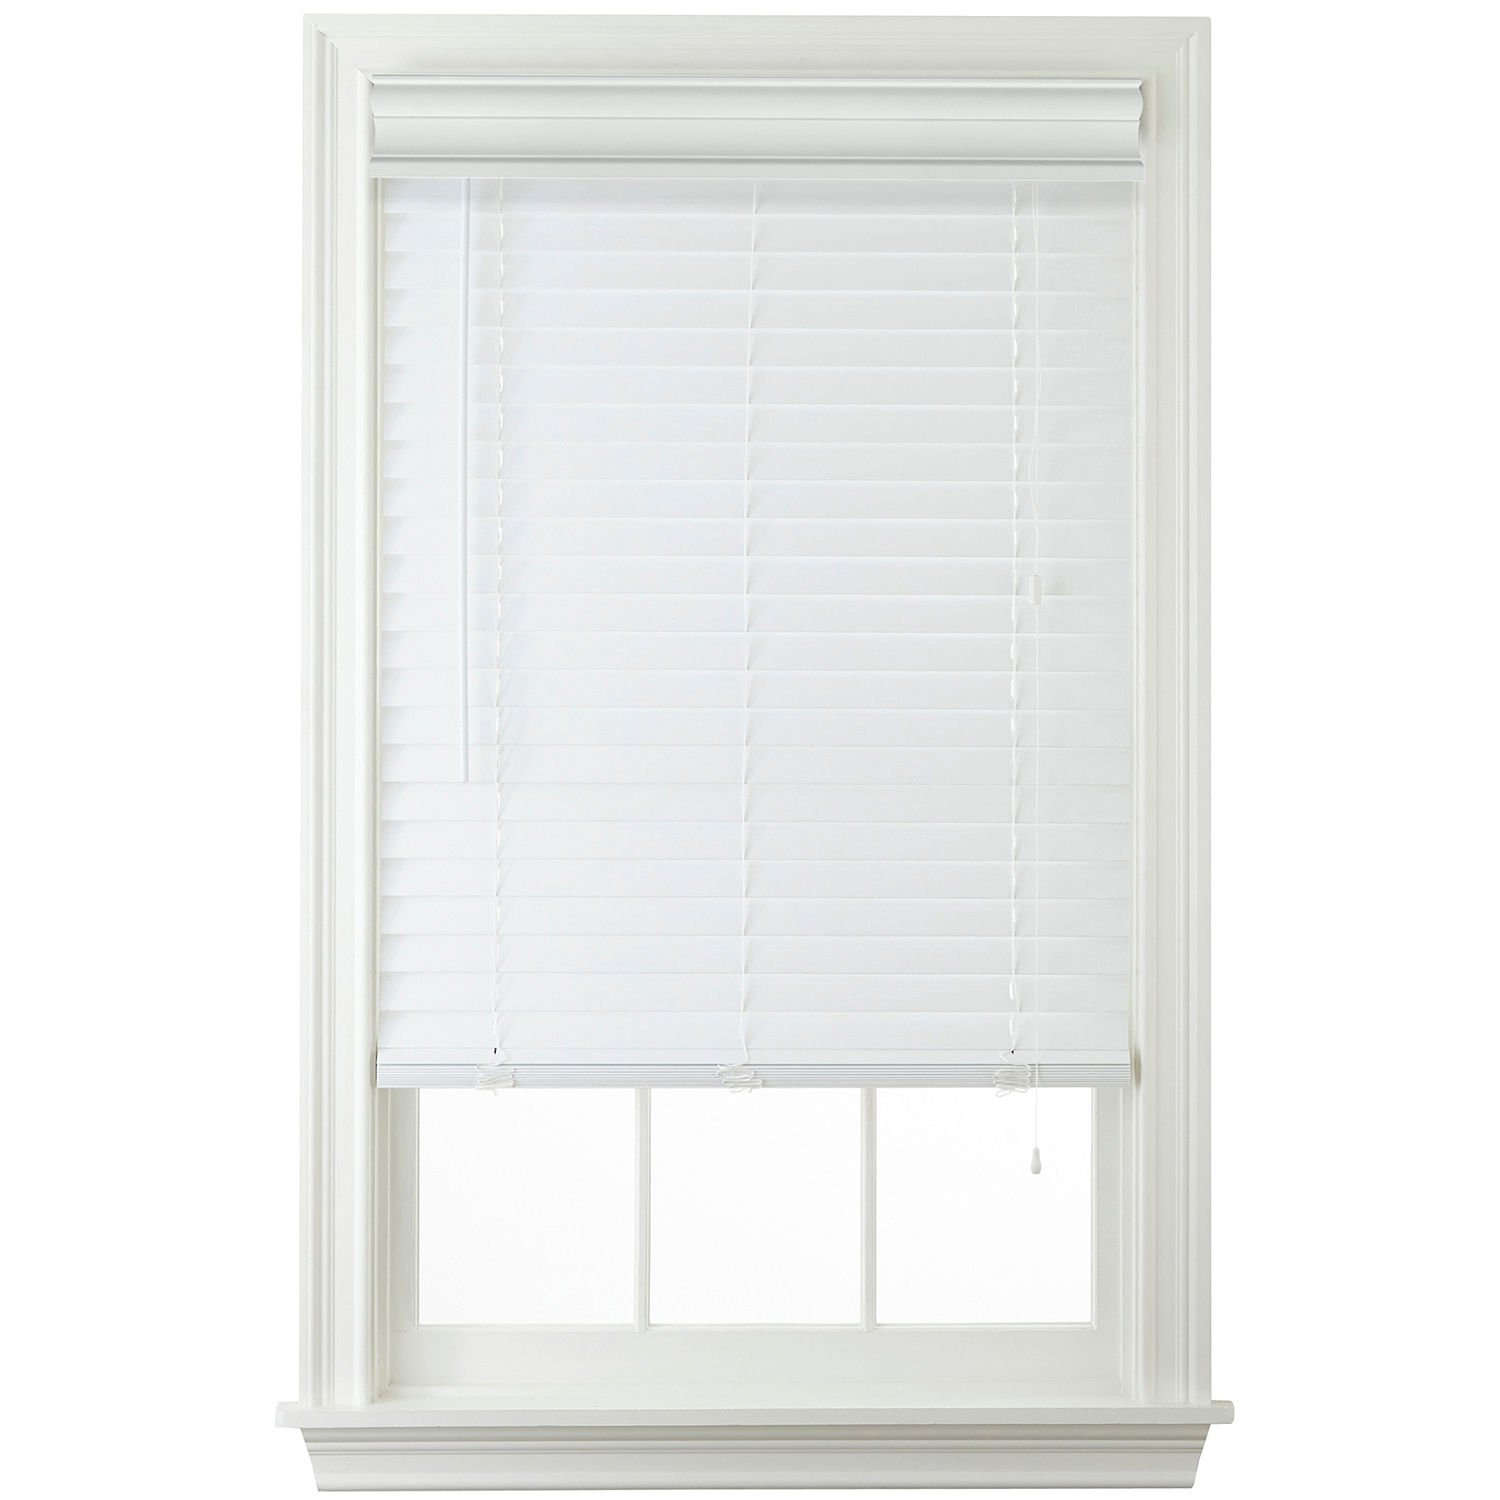 Window Blind Outlet 2'' Faux Wood Horizontal Blinds - White (36x64)